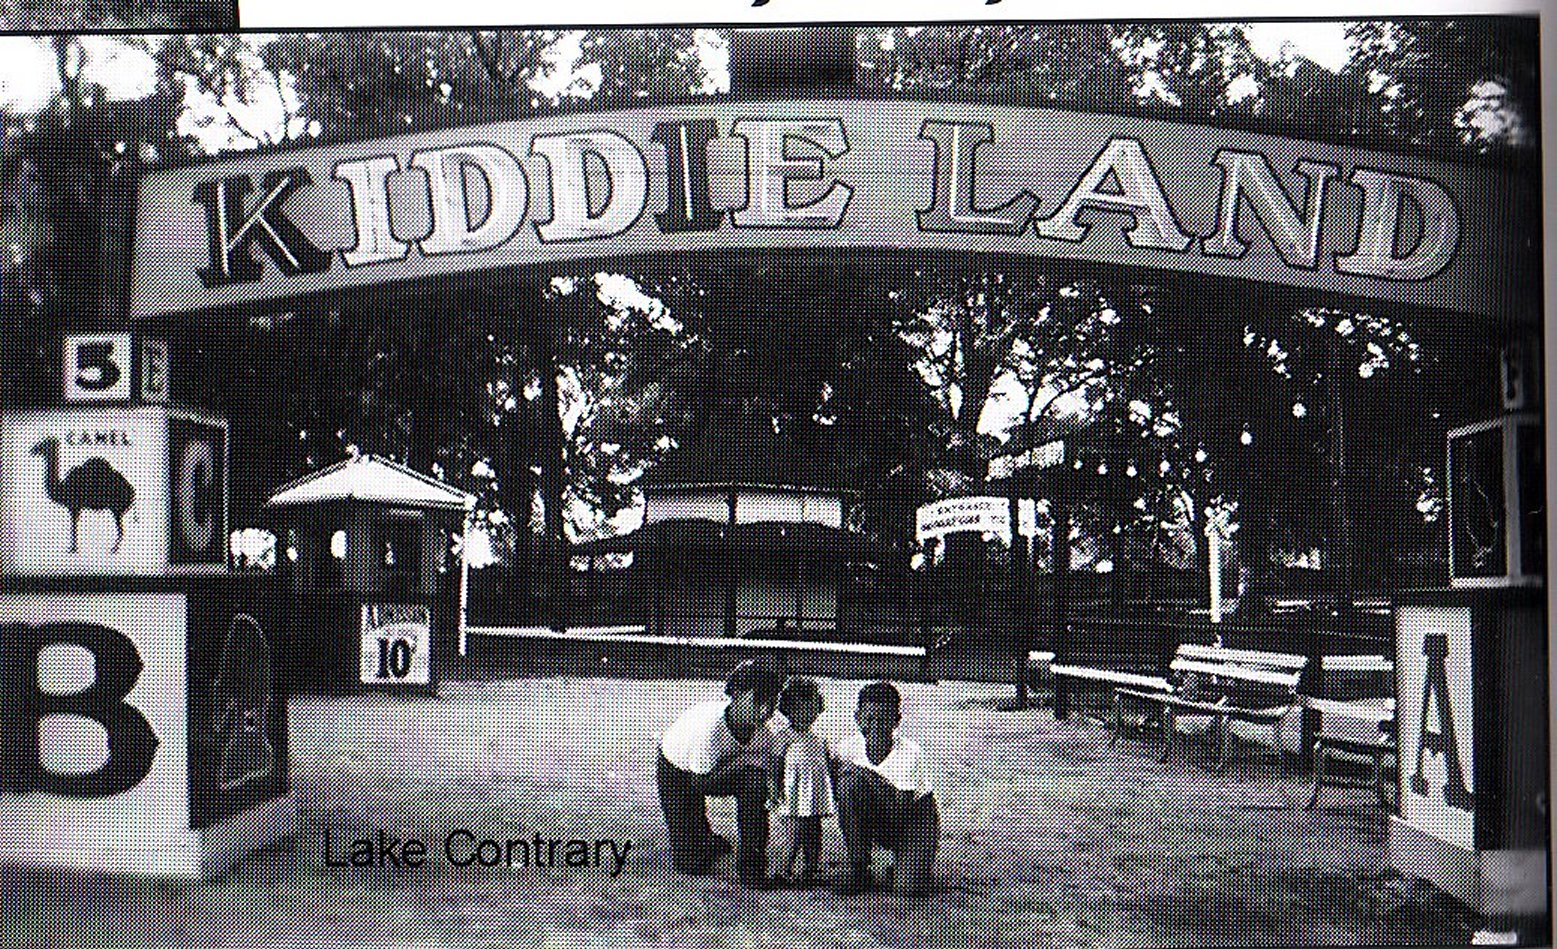 Kiddie Land Lake Contrary St. Joseph Mo